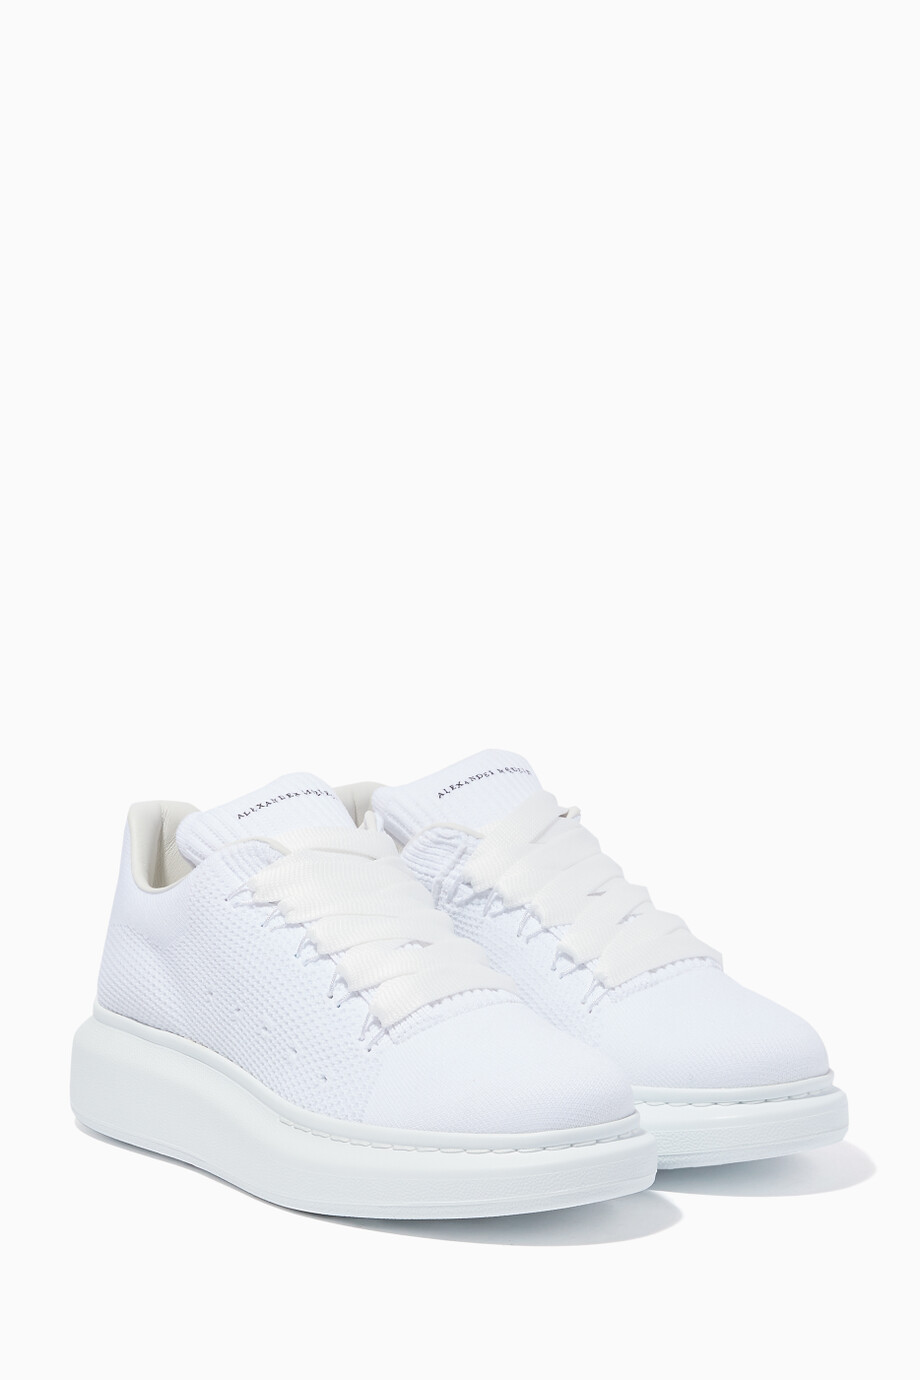 Shop Alexander McQueen White White Knitted Oversized ...